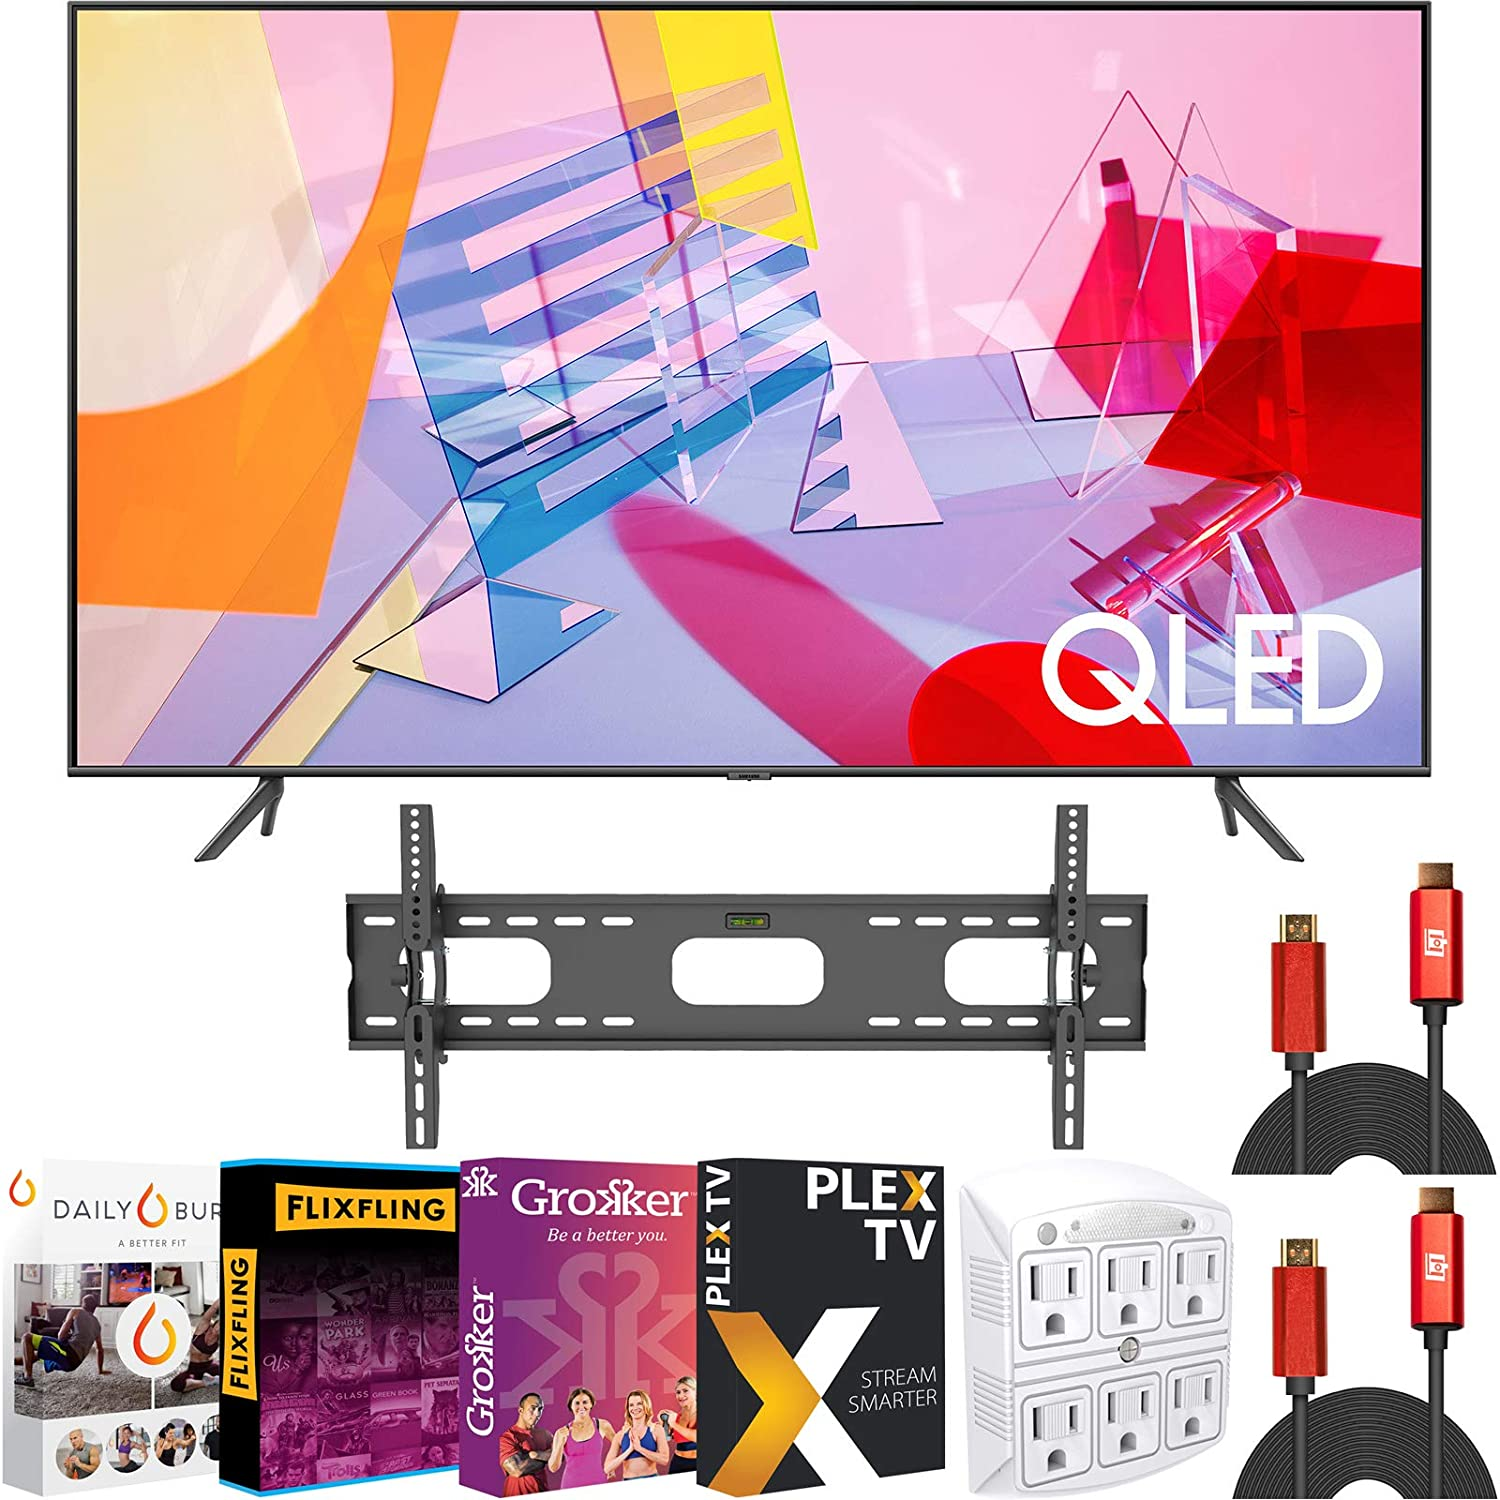 SAMSUNG 55 inch QN55Q60TAFXZA Class Q60T QLED 4K UHD HDR Smart TV (2020) Bundle with Deco Mount Tilting Wall Mount + 2 x Deco Gear HDMI Cables + Stanley SurgePro 6 Outlet Adapter + Streaming Kit